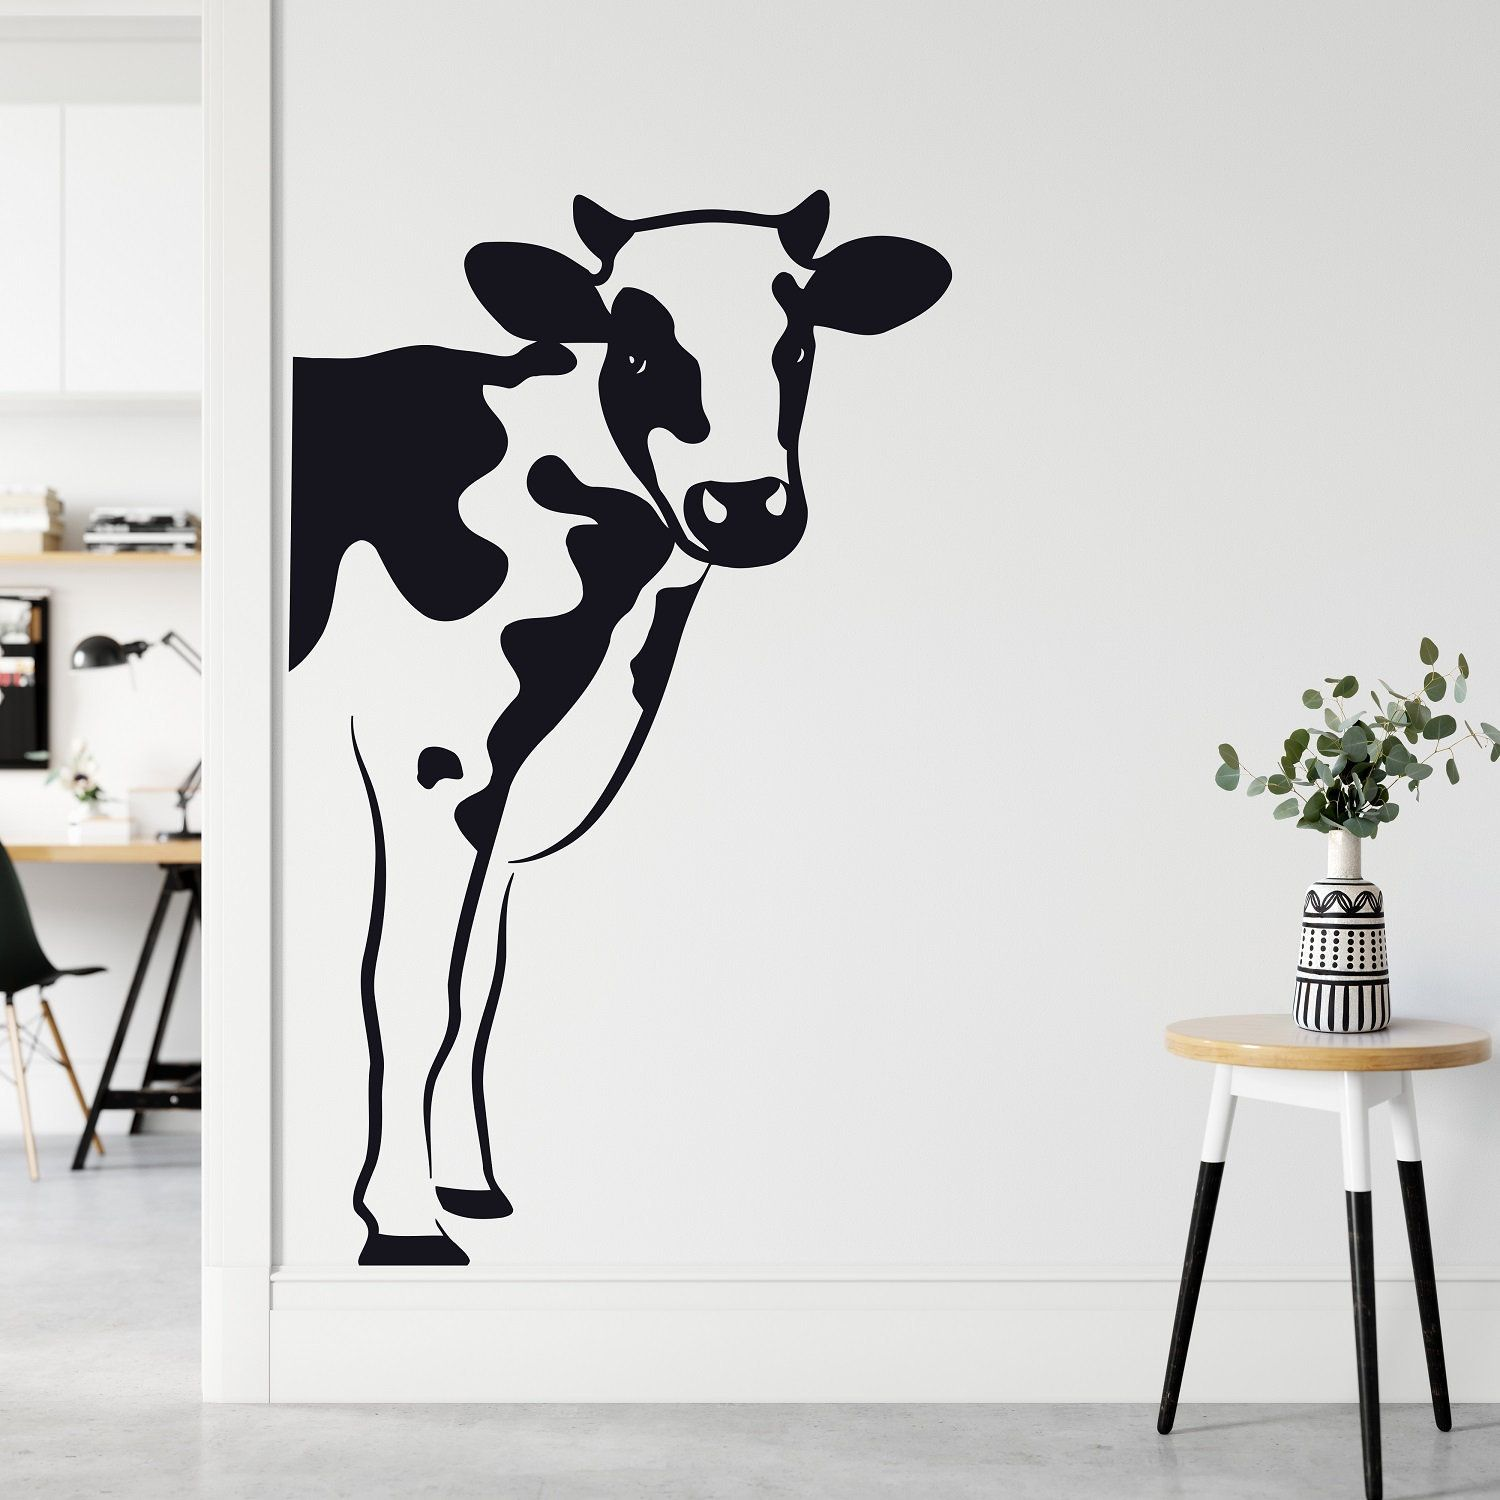 Cow Wall Decor For Kitchen Cow Vinyl Decal Animal Wall Etsy Animal Wall Decals Cow Wall Art Cow Wall Decor